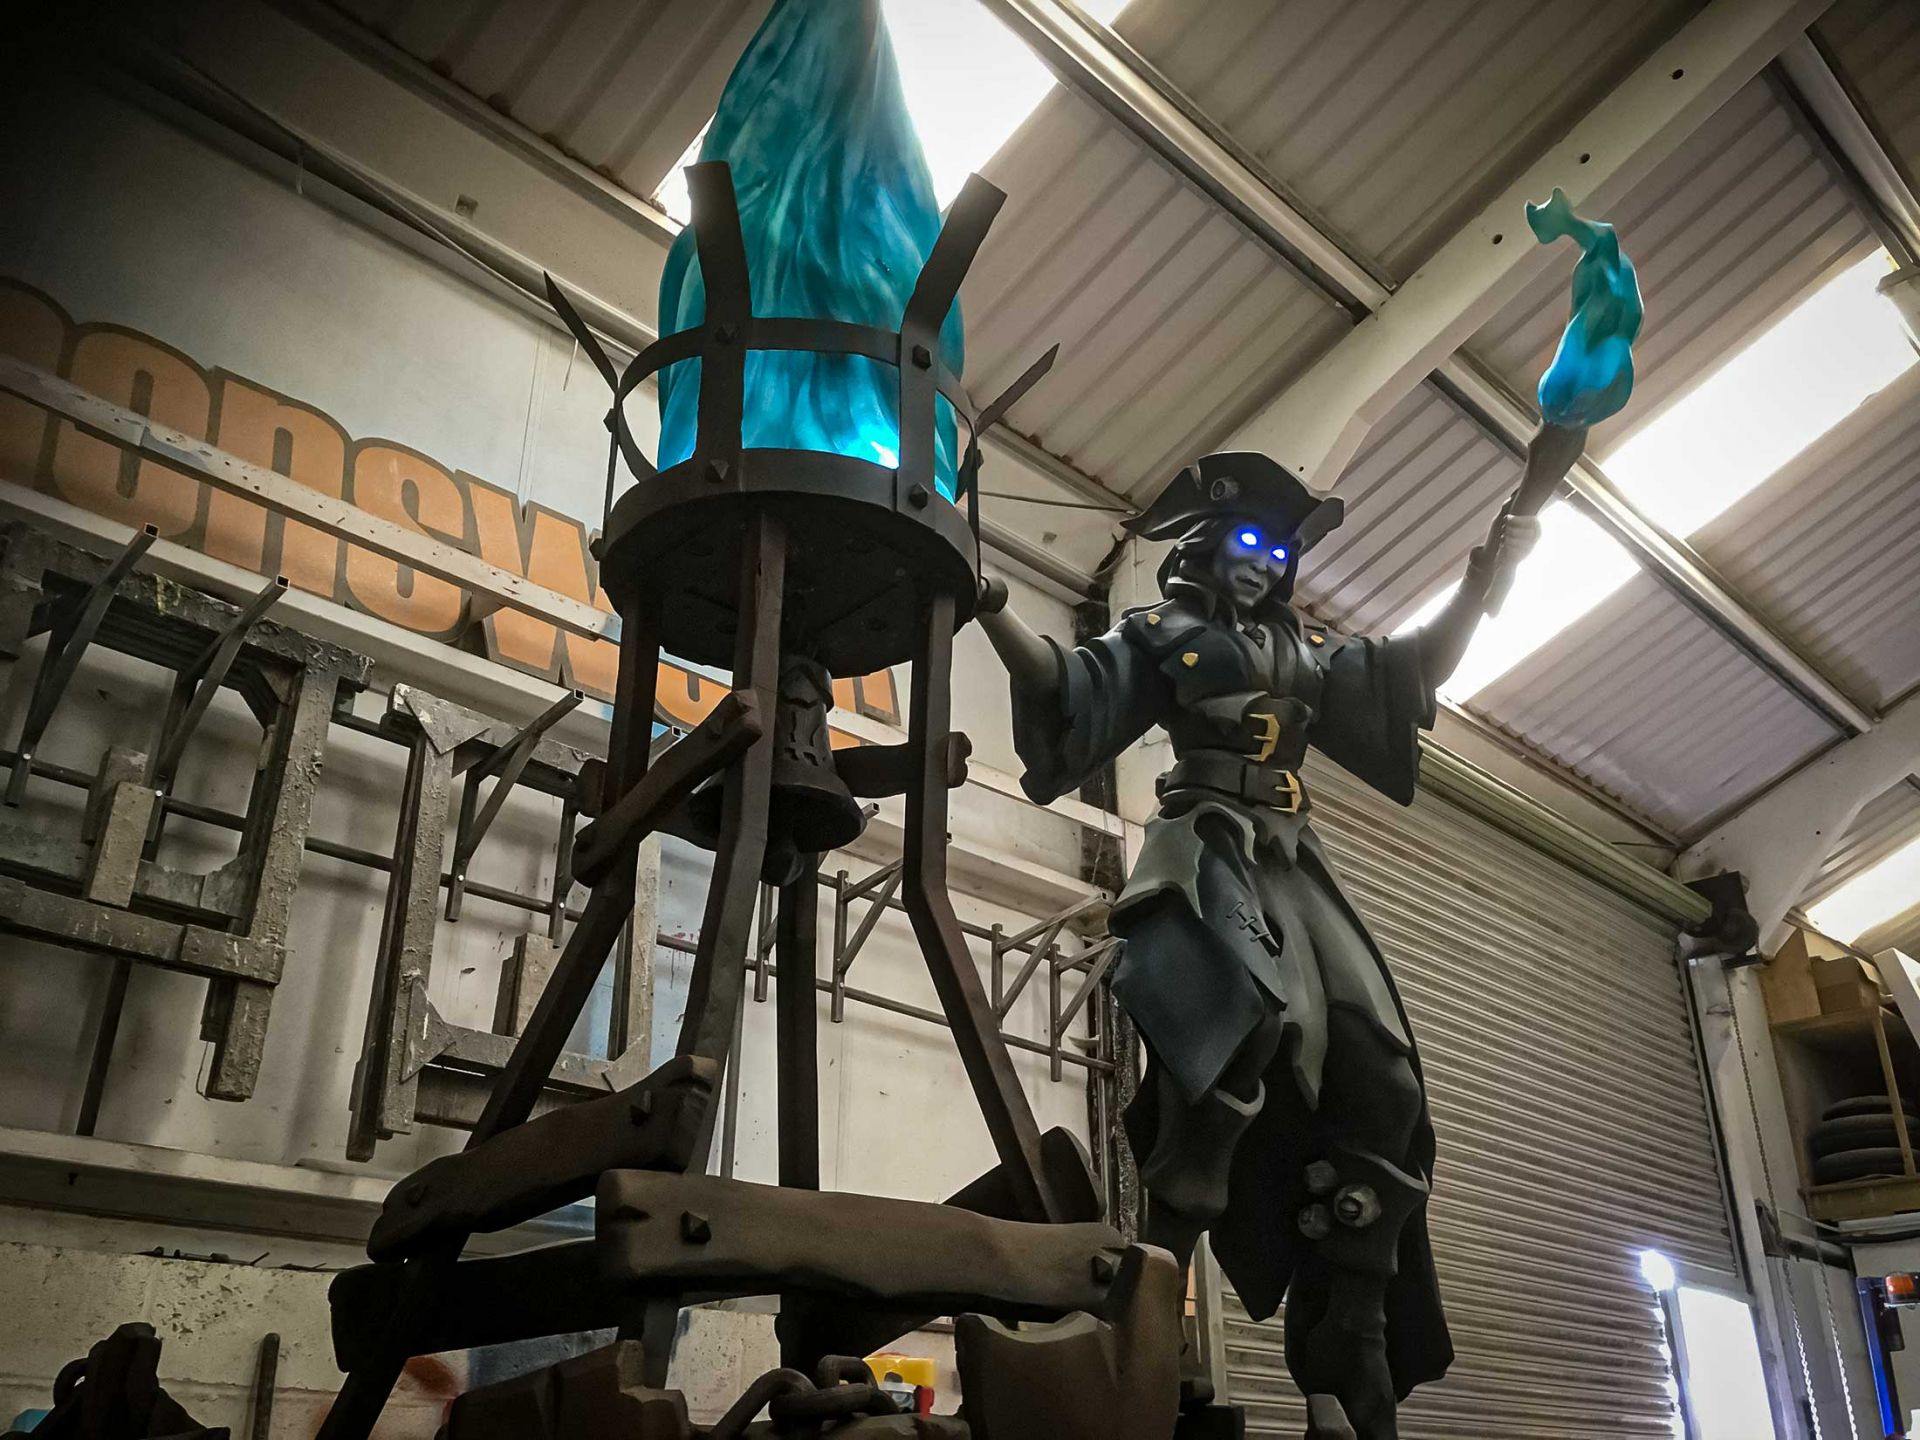 Sea of thieves belle sculpture in workshop after being completed.